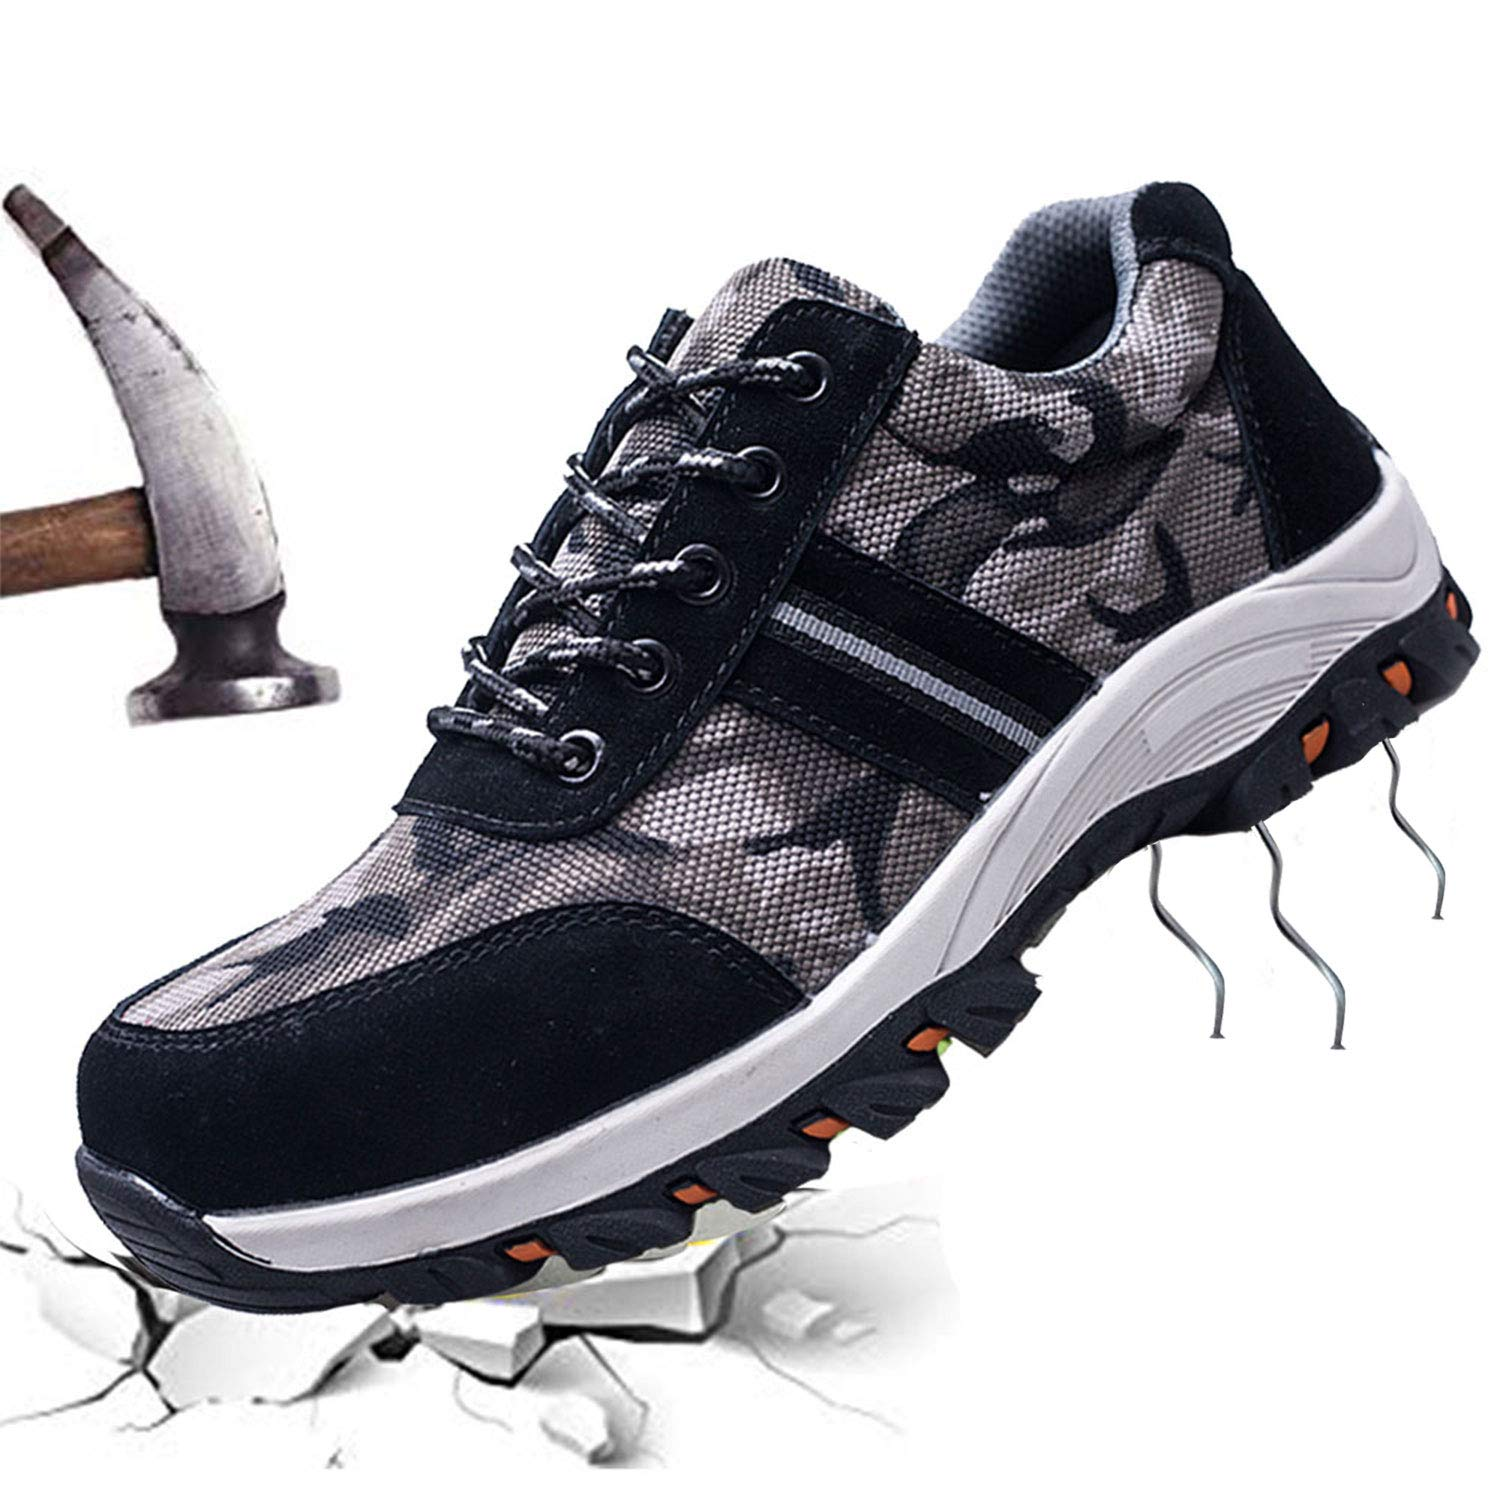 JACKSHIBO Mens Womens Work Safety Shoes,Breathable Outdoor Steel Toe Footwear Industrial and Construction Shoes, Hiking Shoes by JACKSHIBO (Image #1)